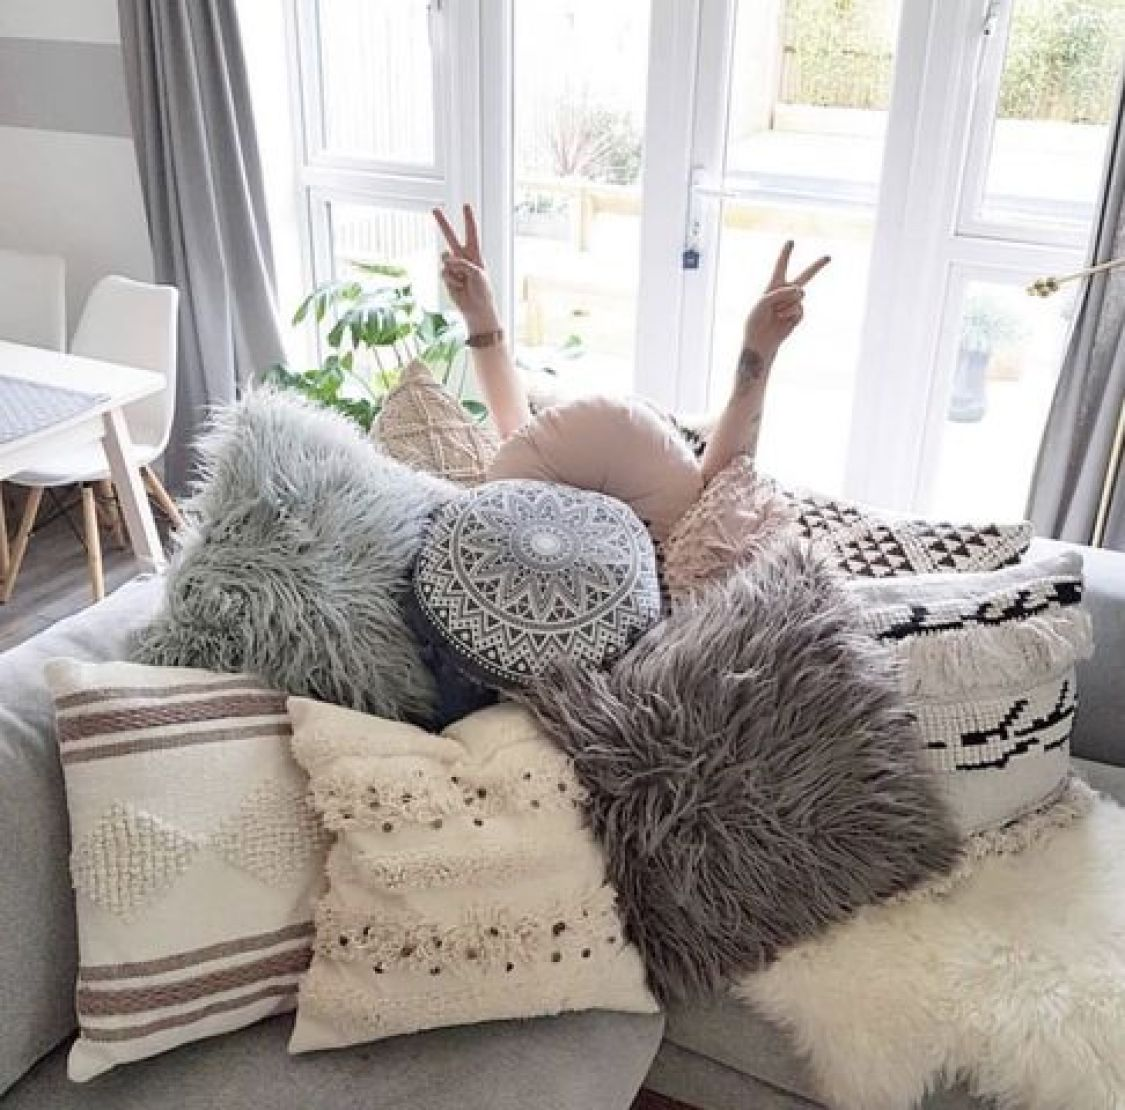 Americans are drowning in throw pillows